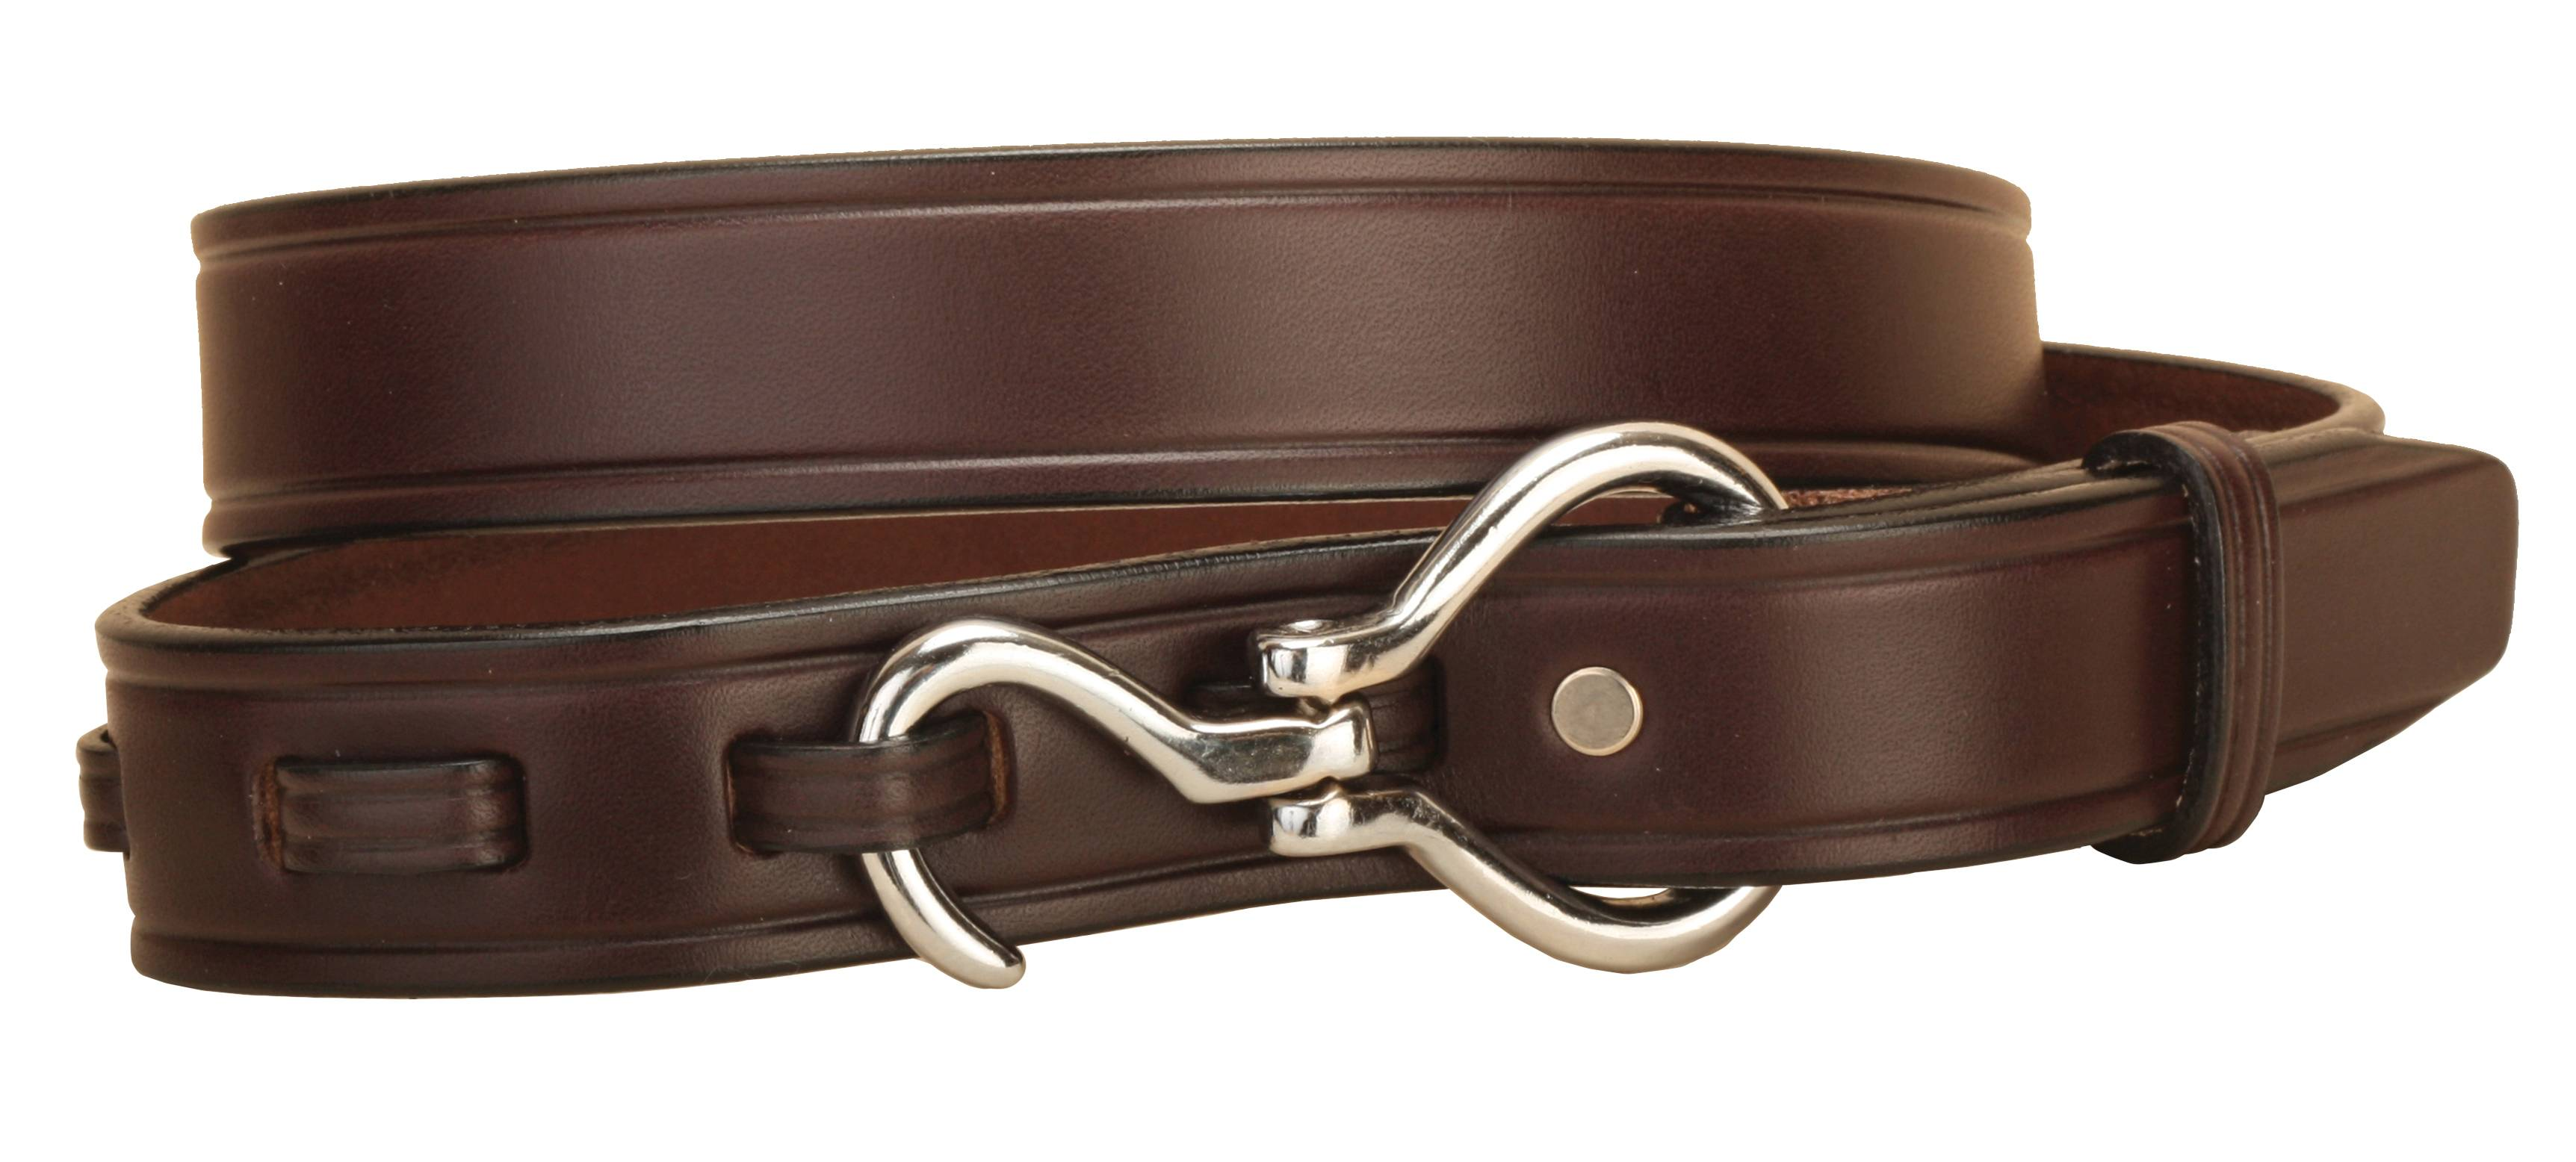 TORY LEATHER 1 1/4'' Belt with Hoof Pick Buckle